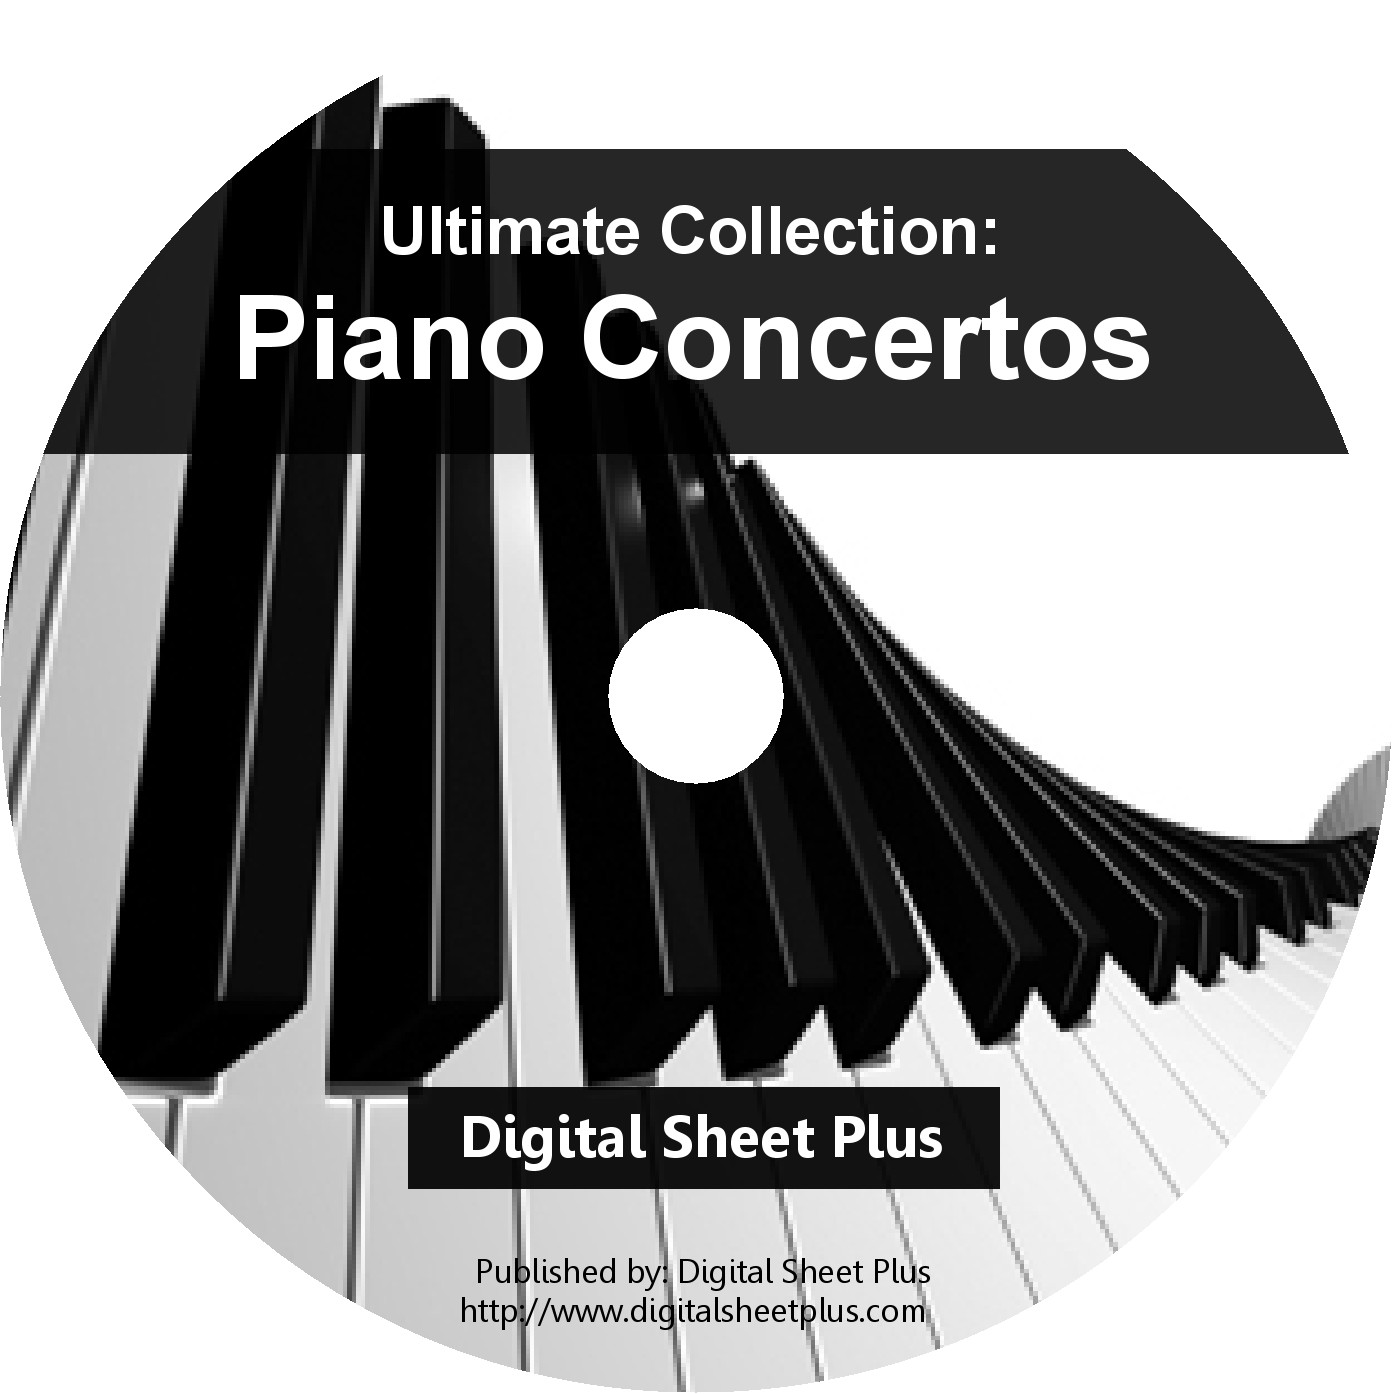 piano_concertos_cd_cover.jpg